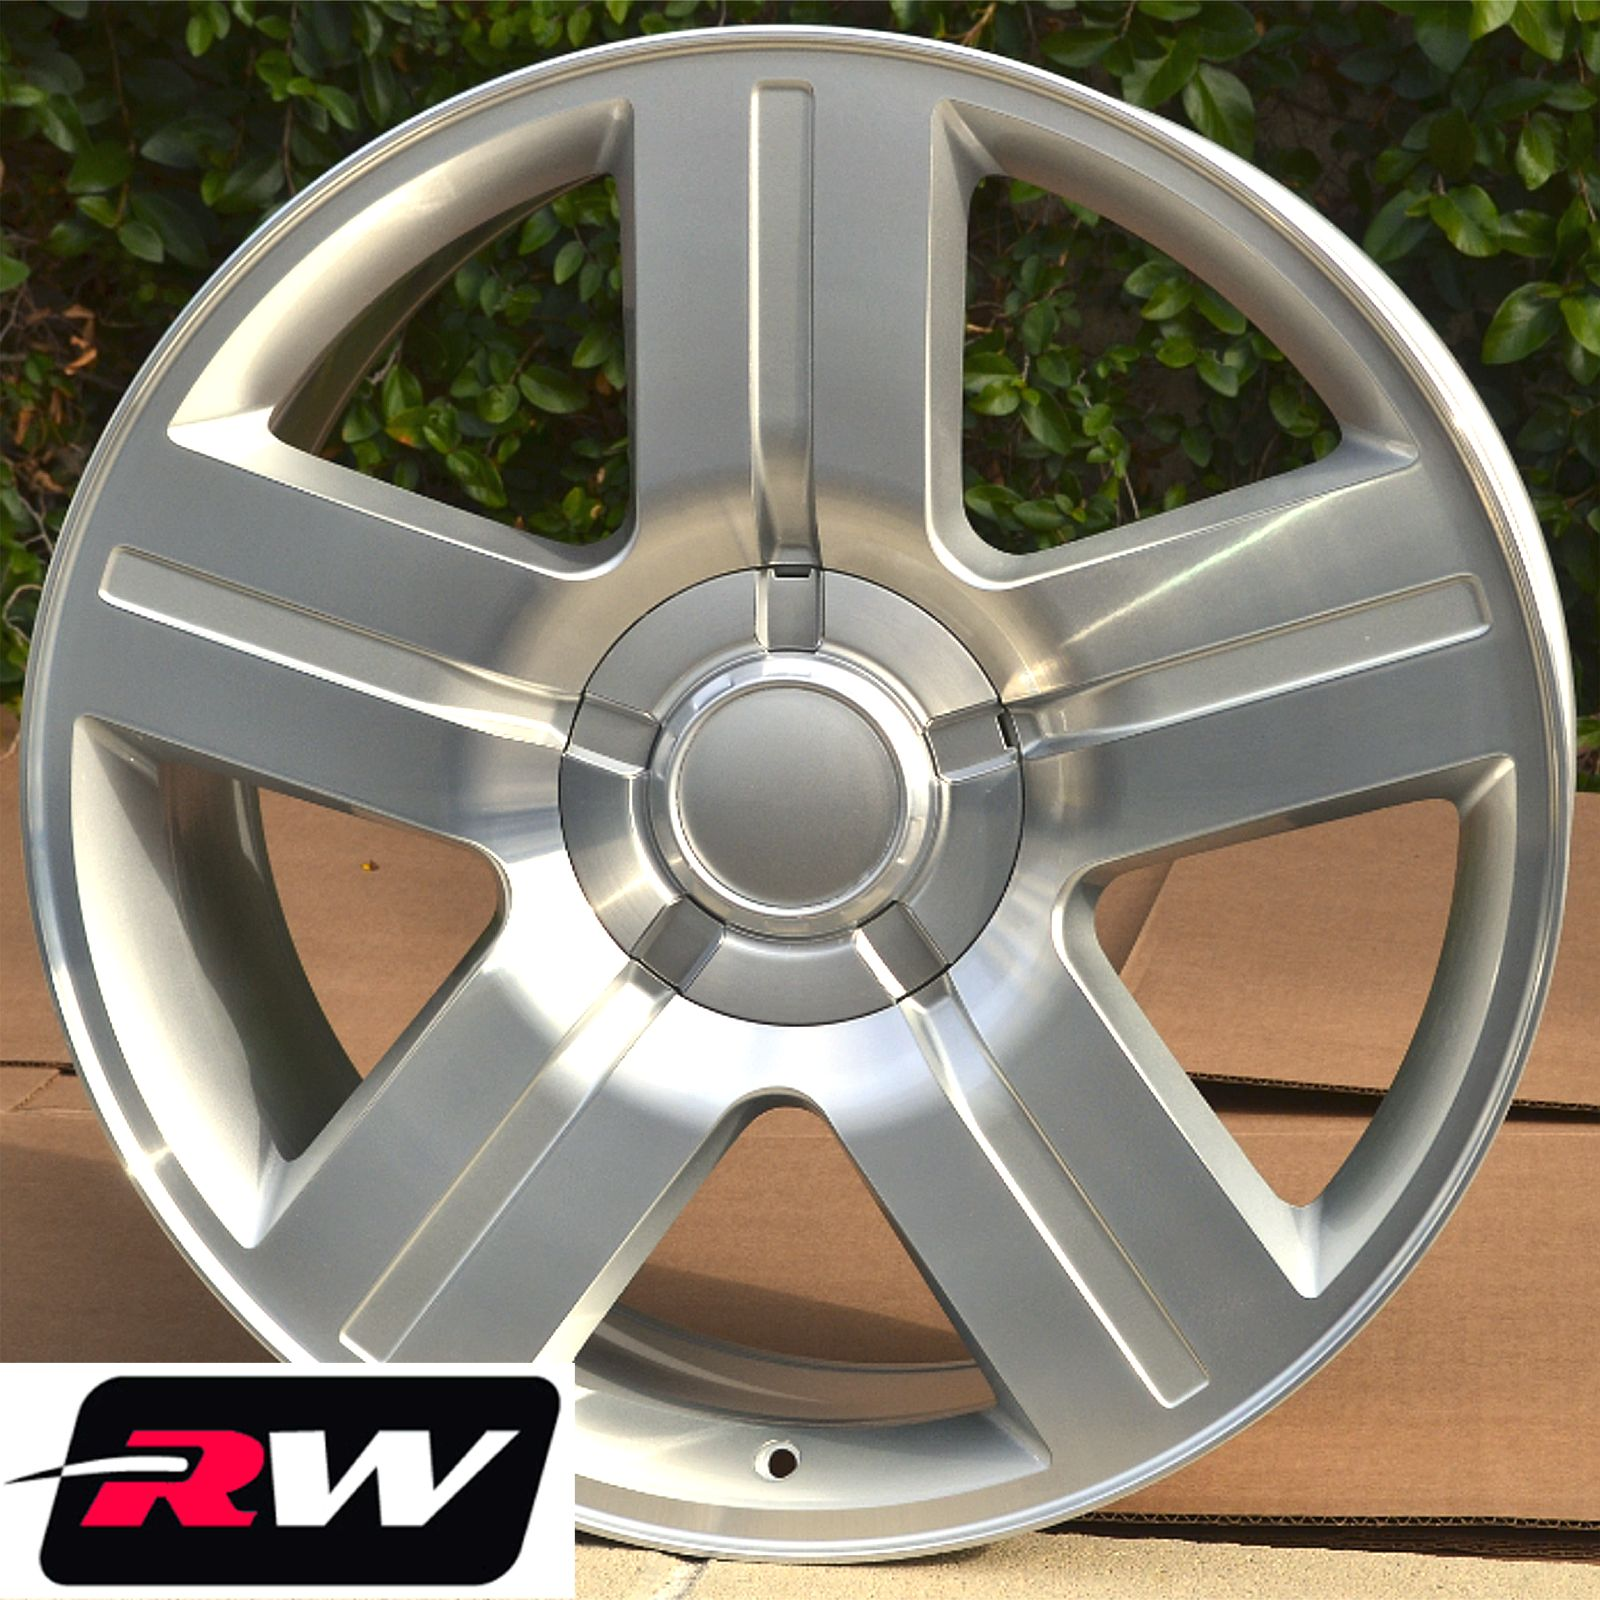 Used 30 Inch Rims : Chevrolet silverado wheels texas edition rims silver